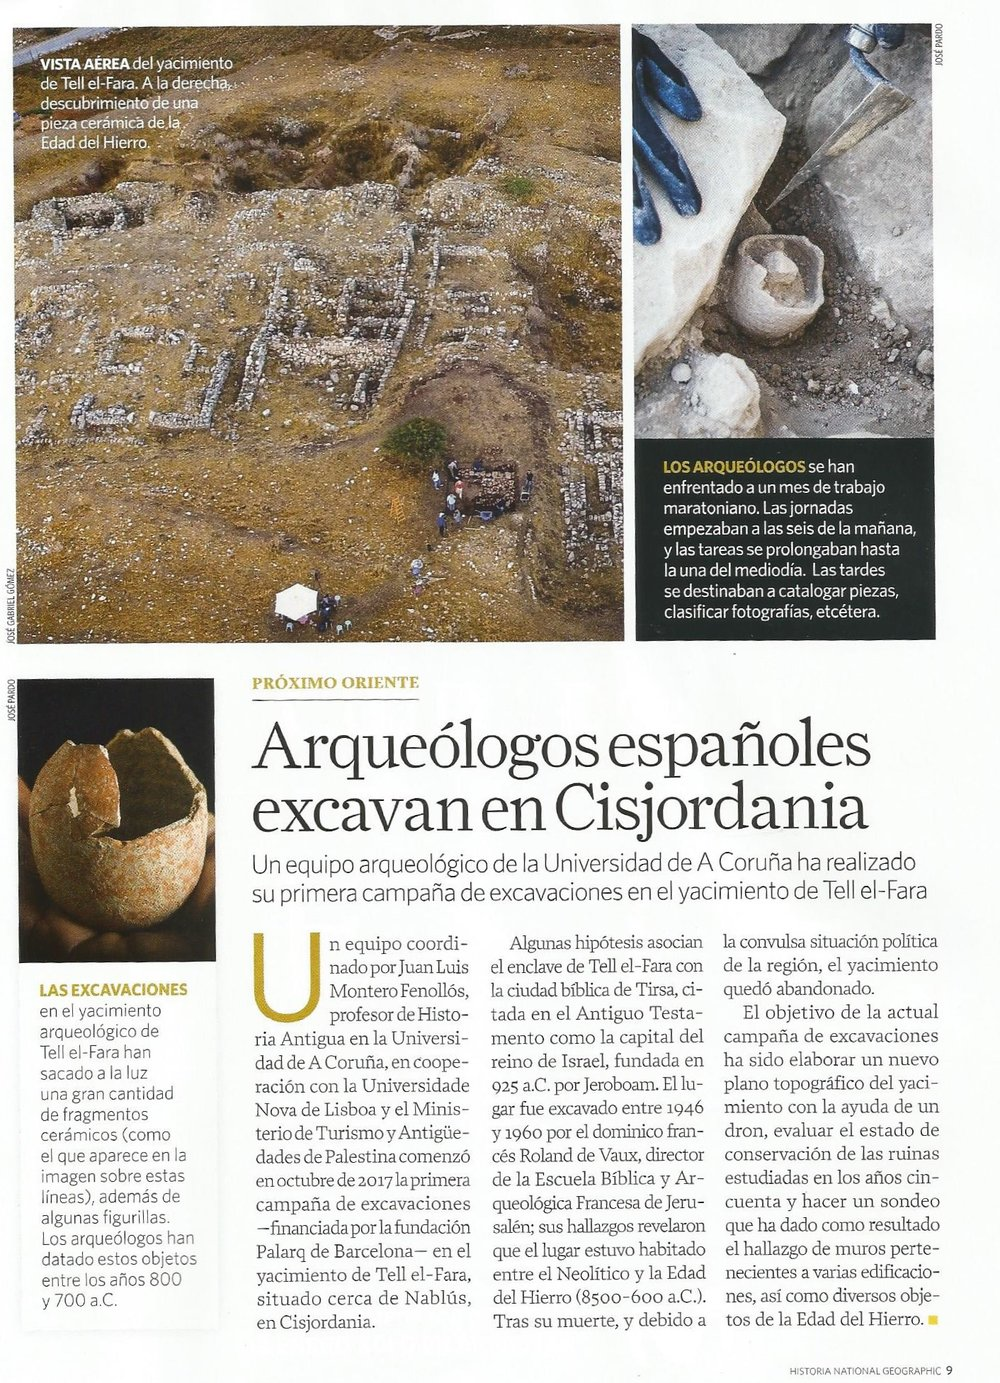 Historia National Geographic - Nº 169, página 92017